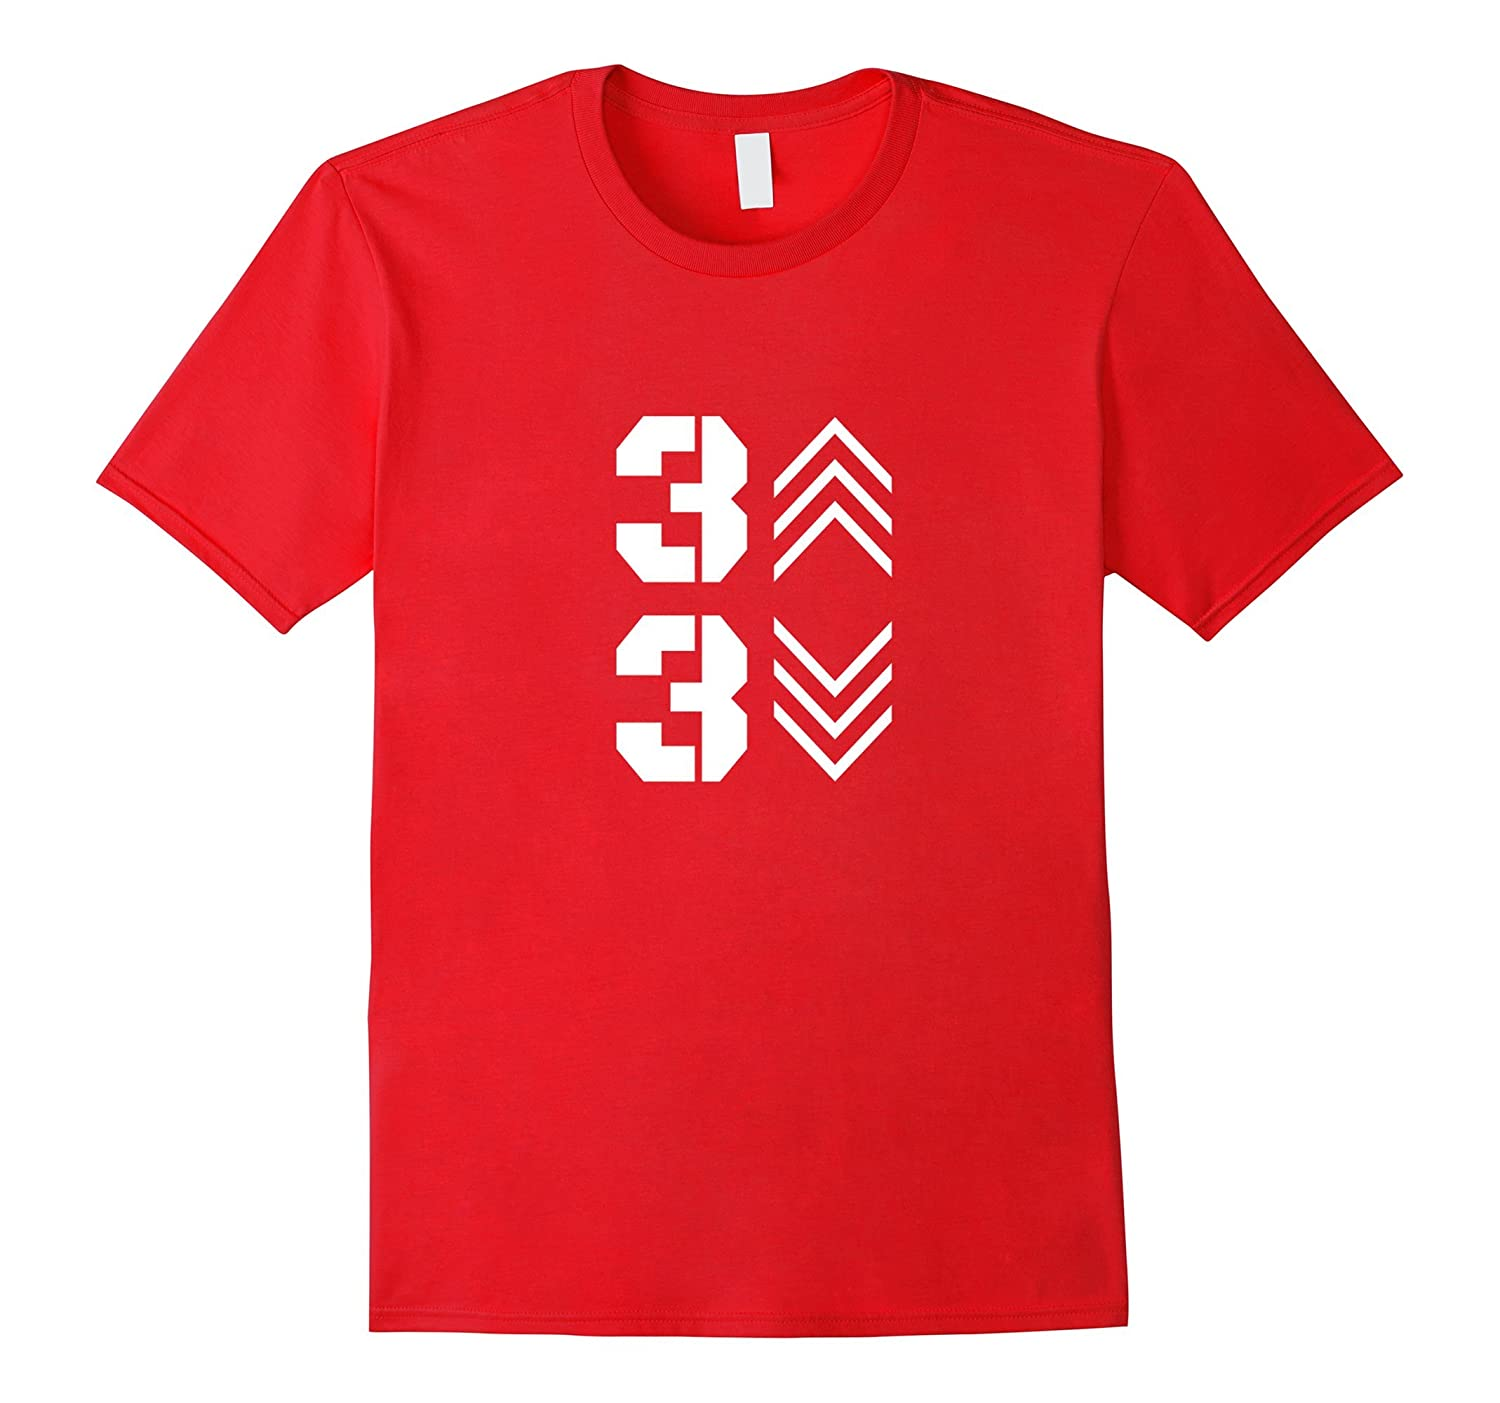 3 Up 3 Down Baseball Graphic T Shirt 2017-CD